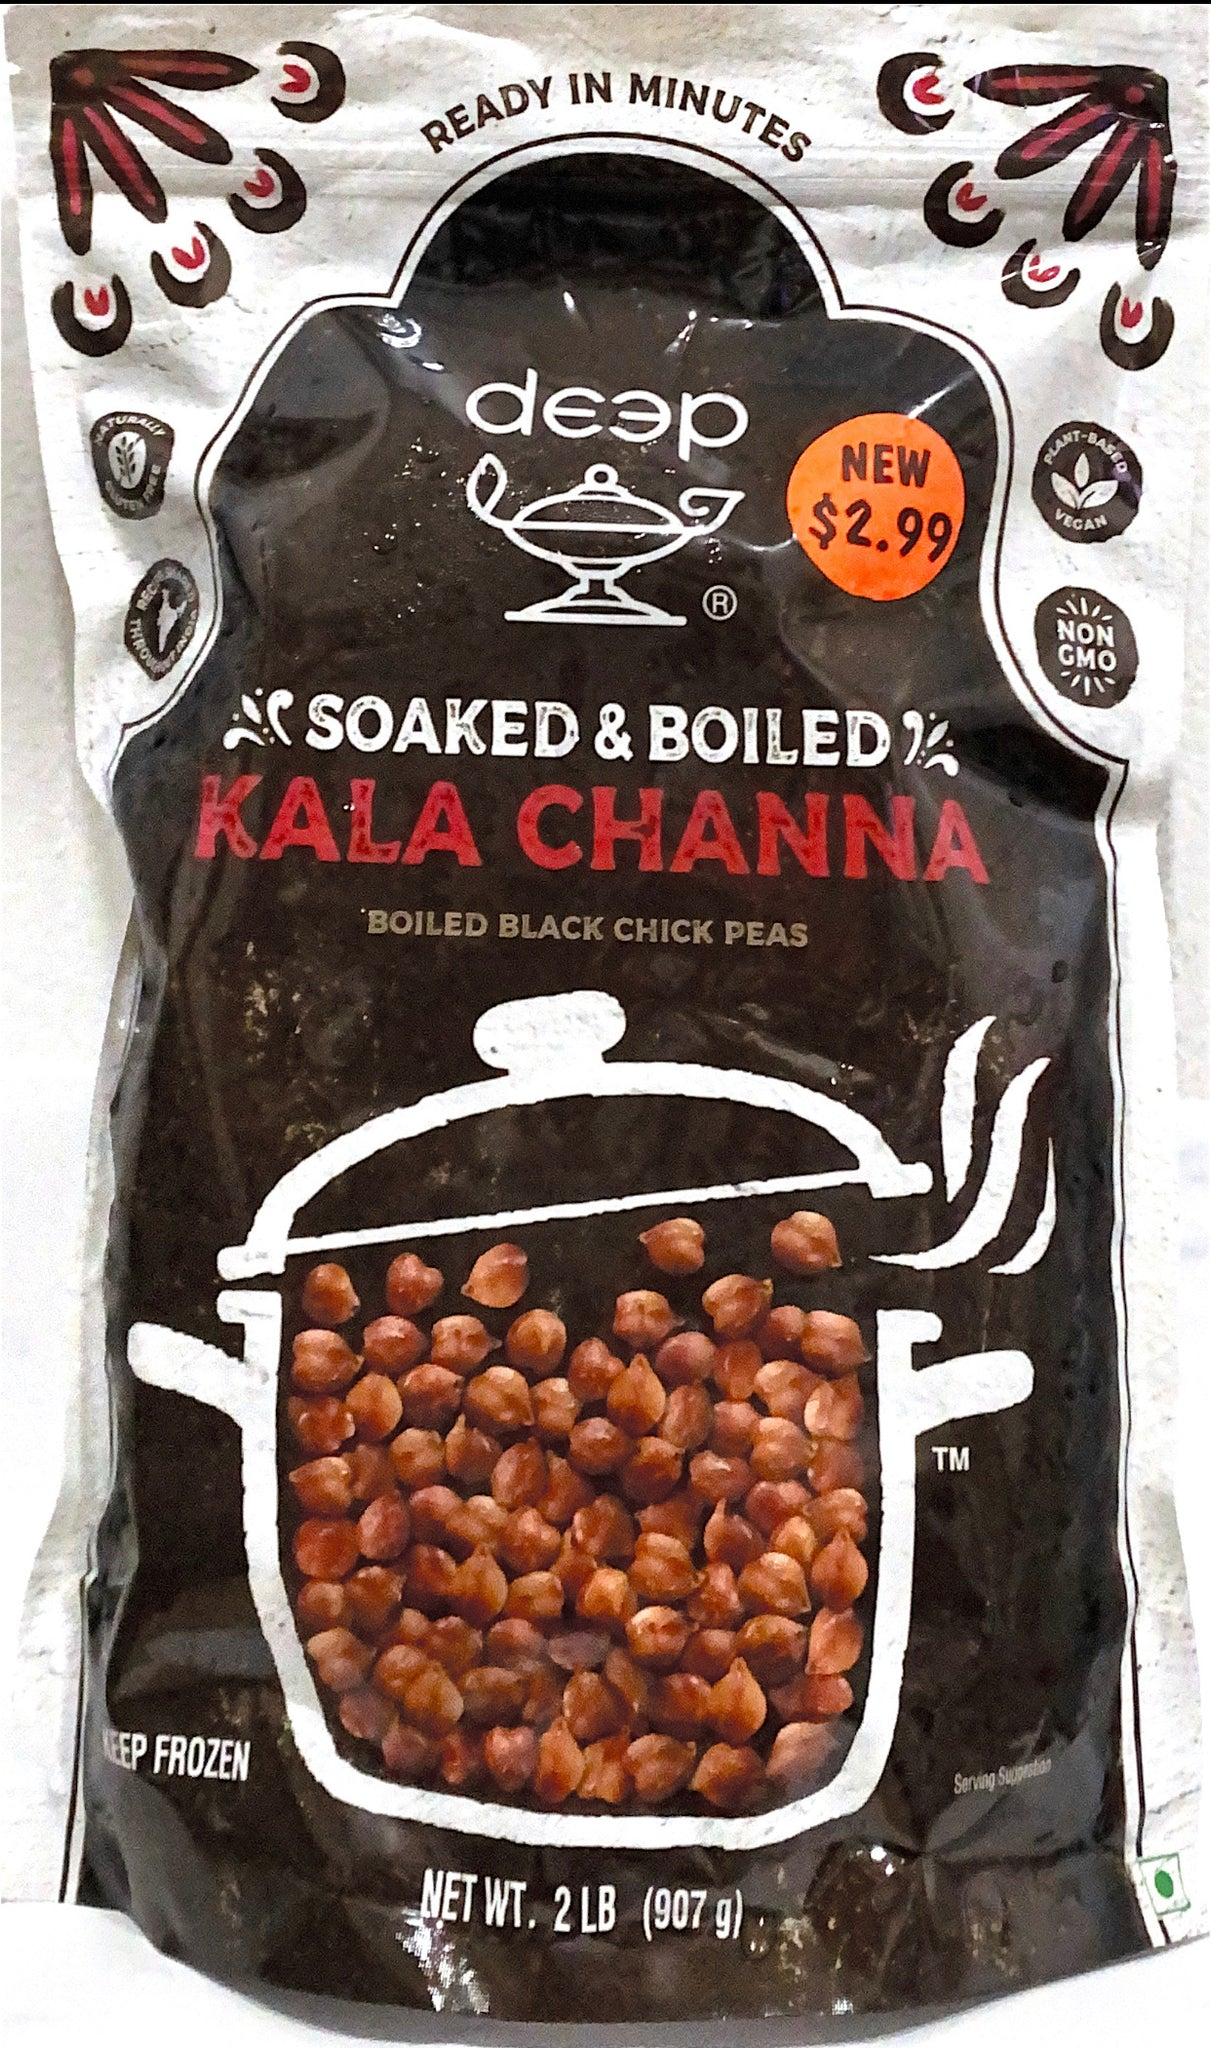 Boiled Black Chick Peas (Boiled Kala Chana)